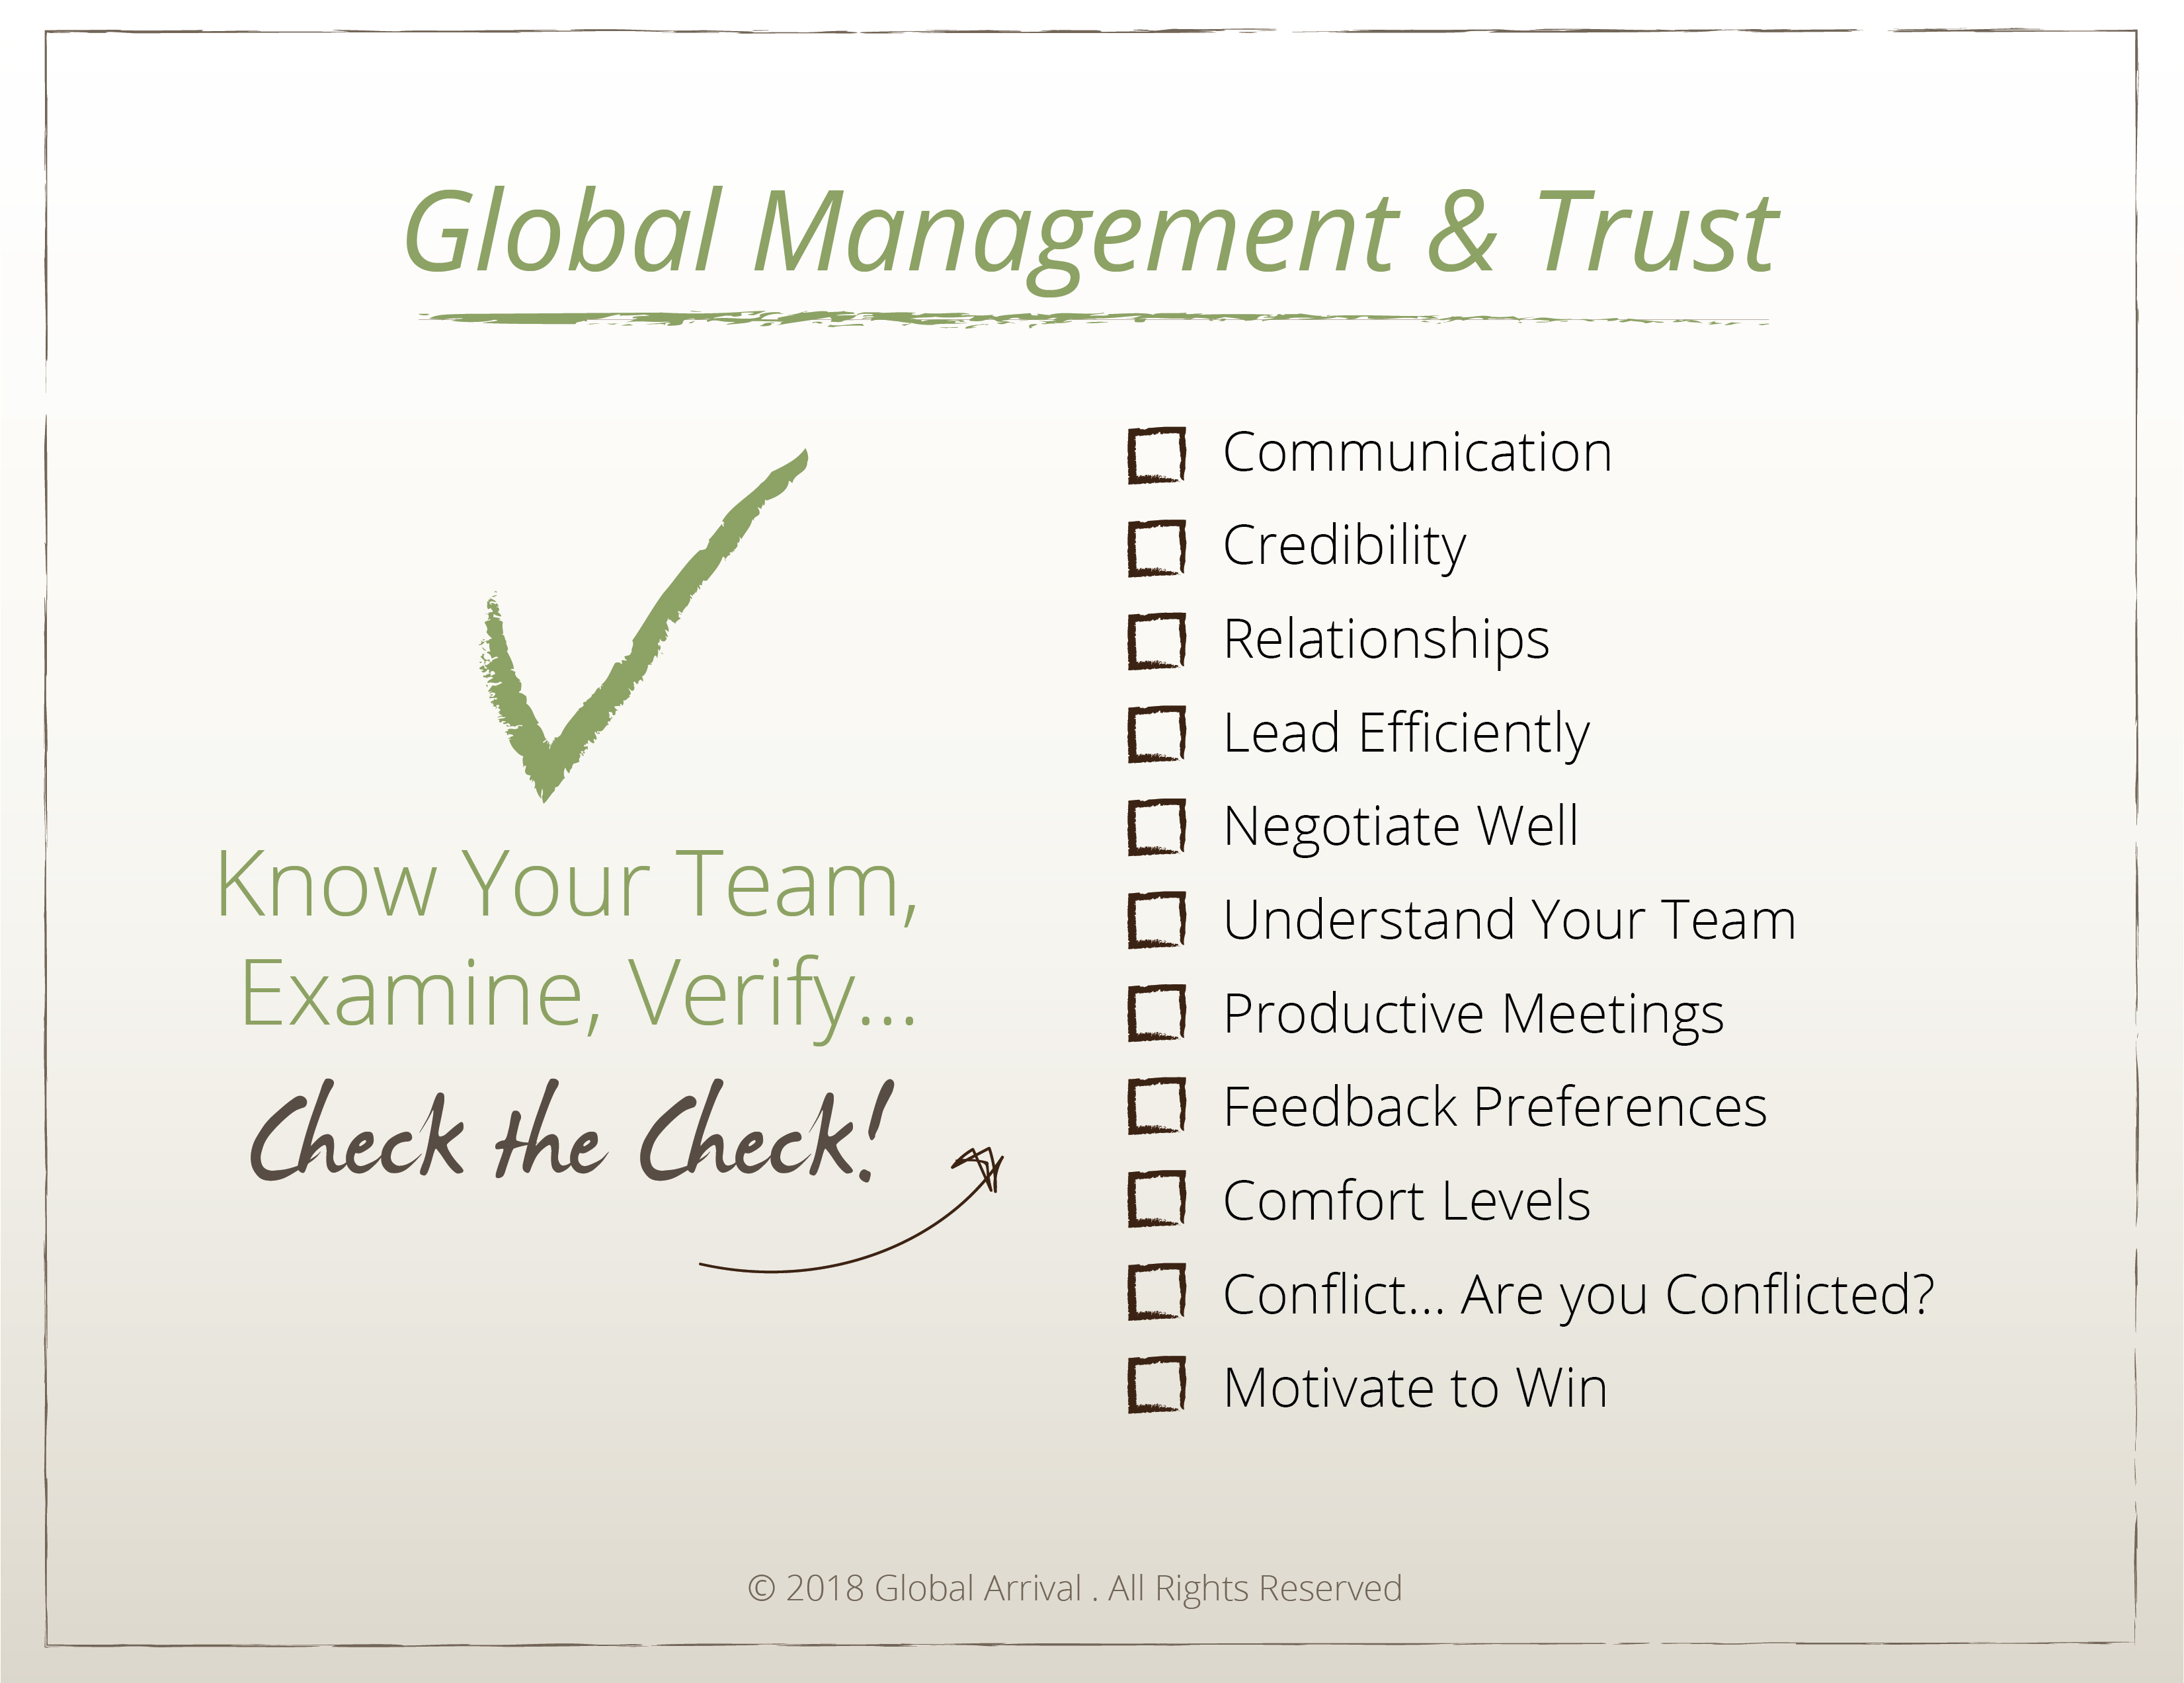 Global Management & Trust